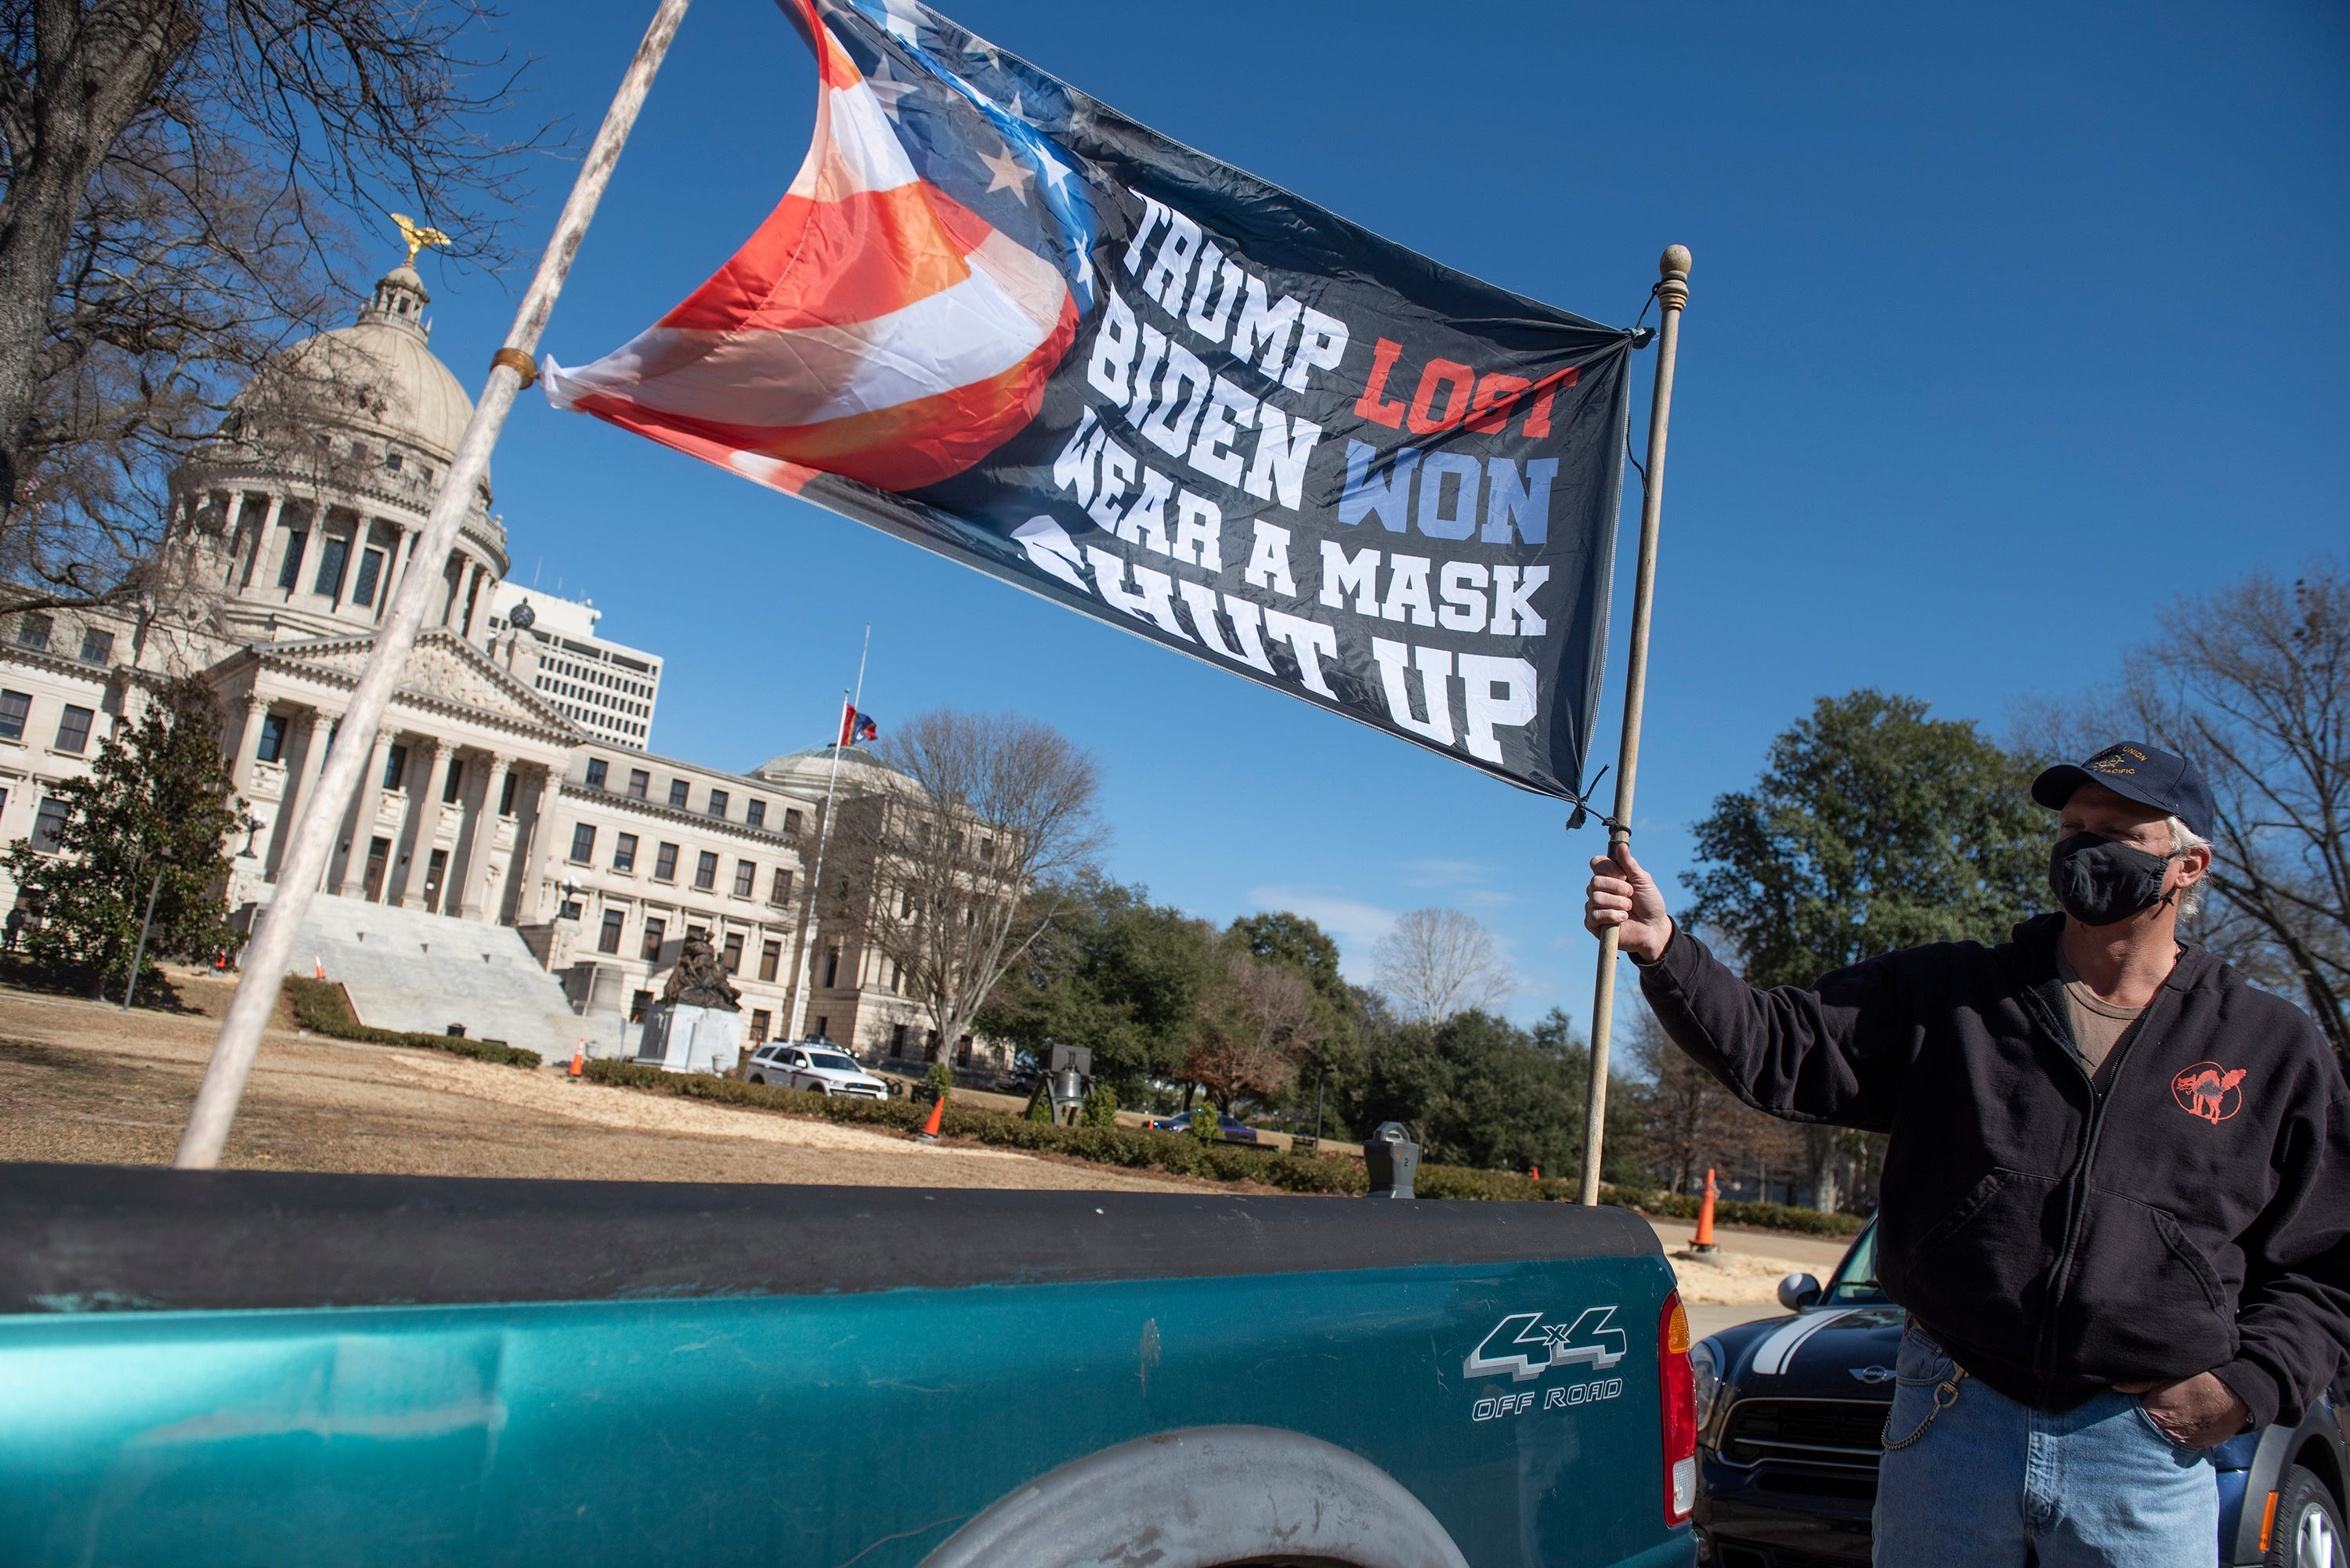 Dale Gibson, of Jackson, Miss., shows off the banner he planned to hold as a counter protester if a pro-Trump rally materialized, Sunday, Jan. 17, 2021, in Jackson. Visibly enhanced security surrounded the Mississippi State Capitol.